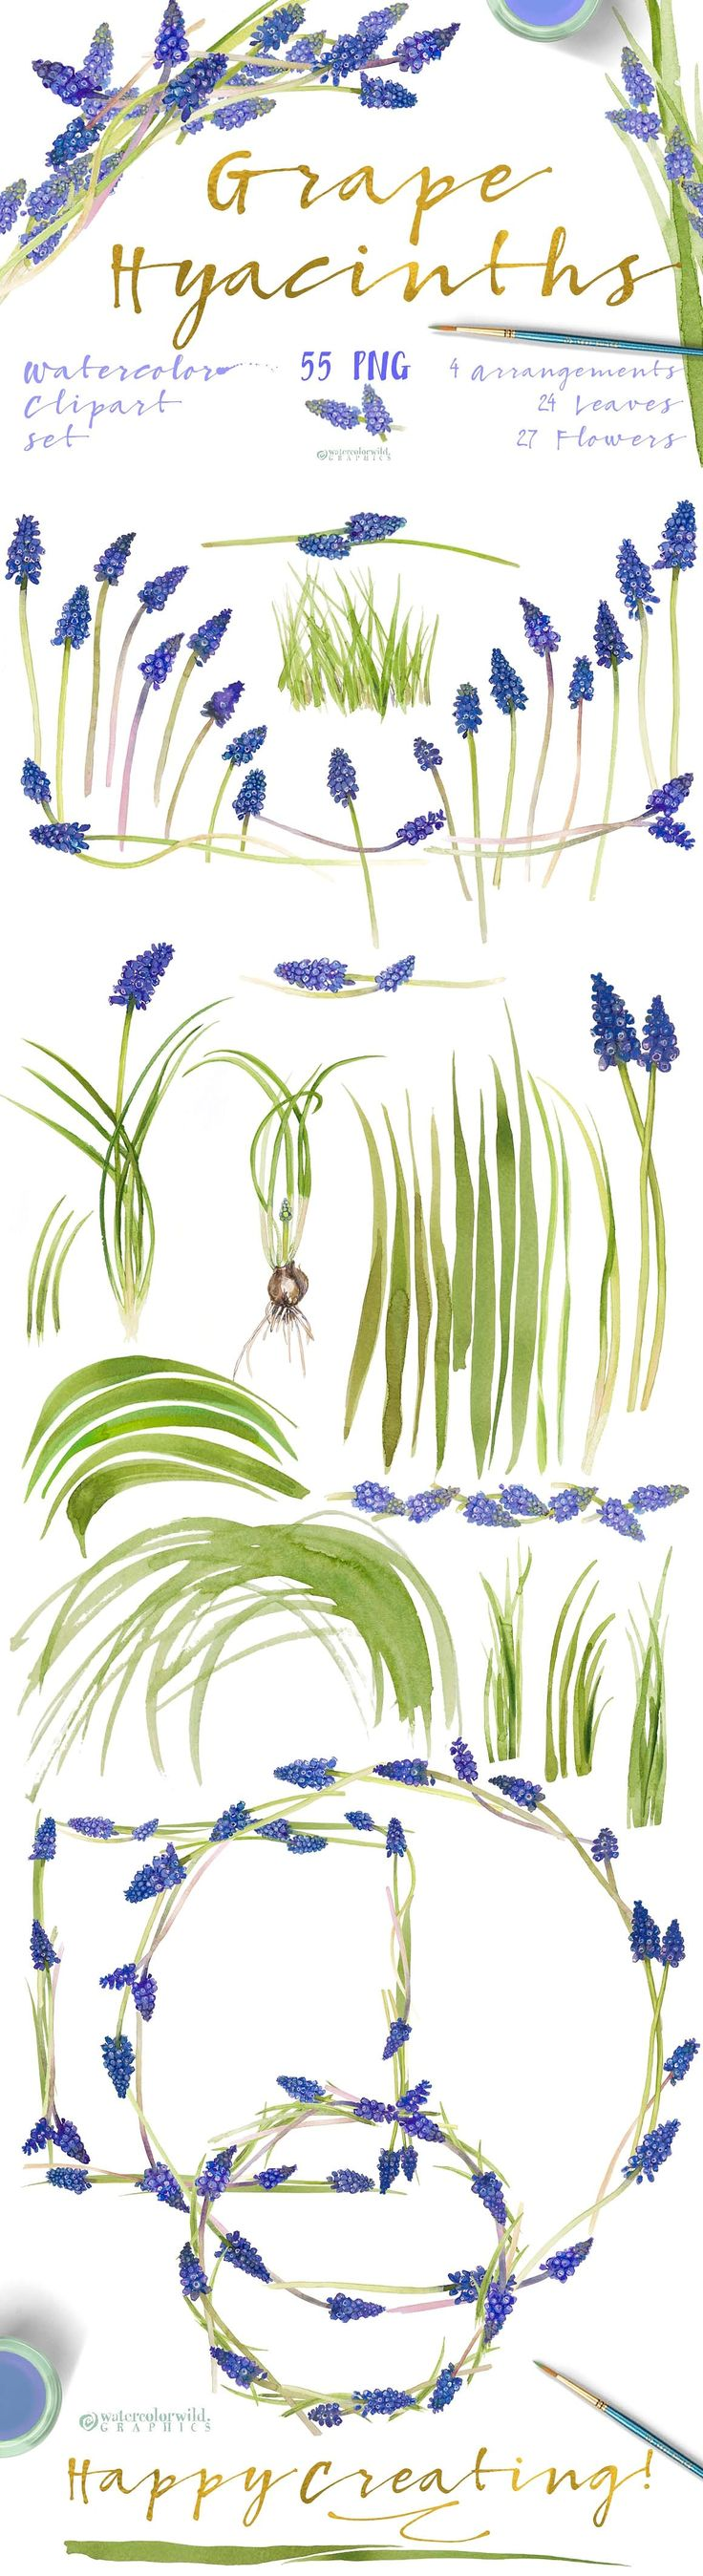 Grape Hyacinths_Blue Spring by watercolorwild.graphics on @creativemarket